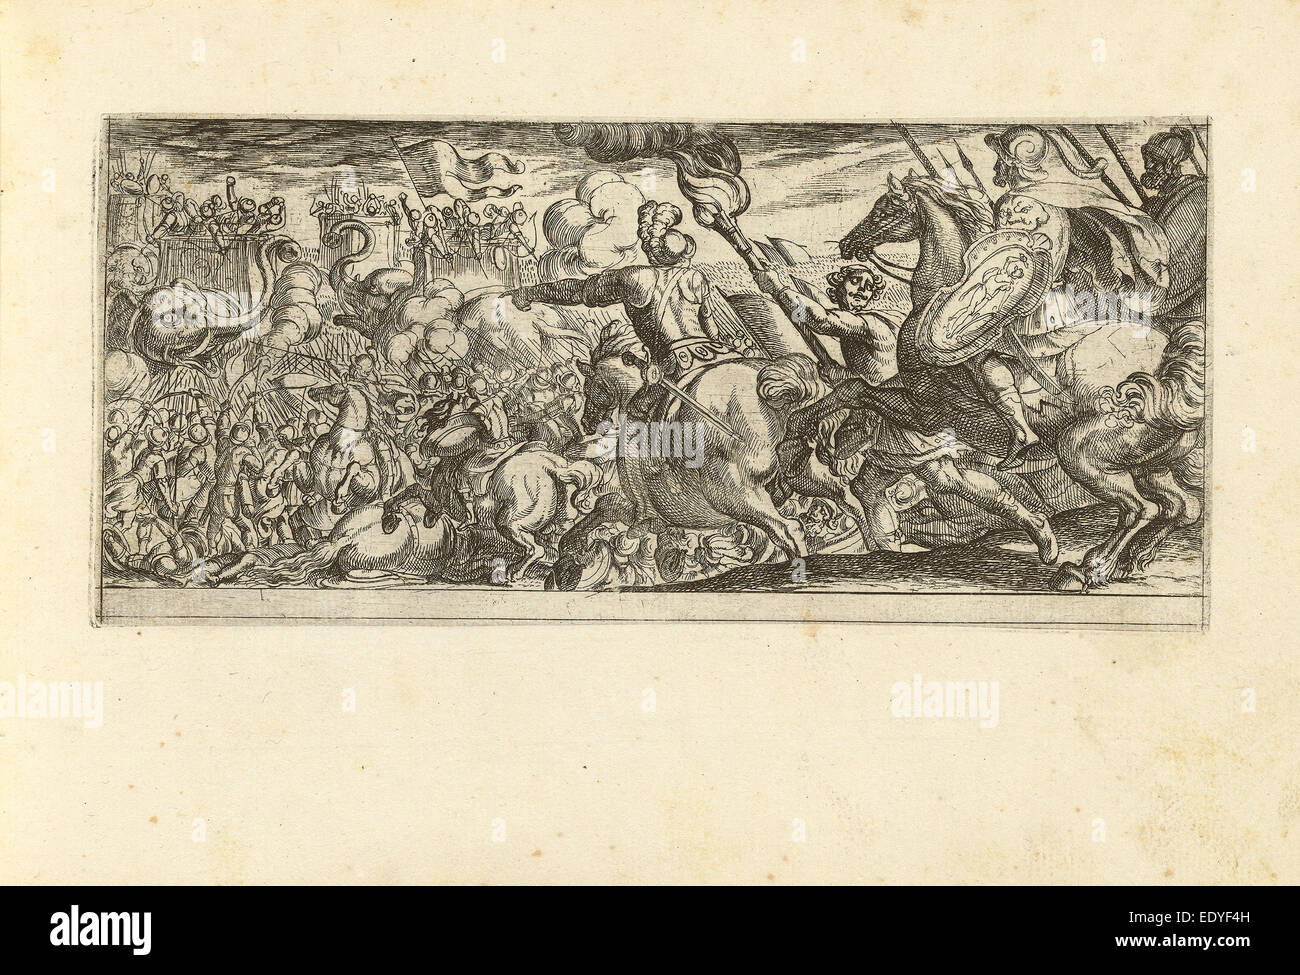 Antonio Tempesta (Italian, 1555 - 1630), Cavalry Attack on a Walled Fortress, etching - Stock Image